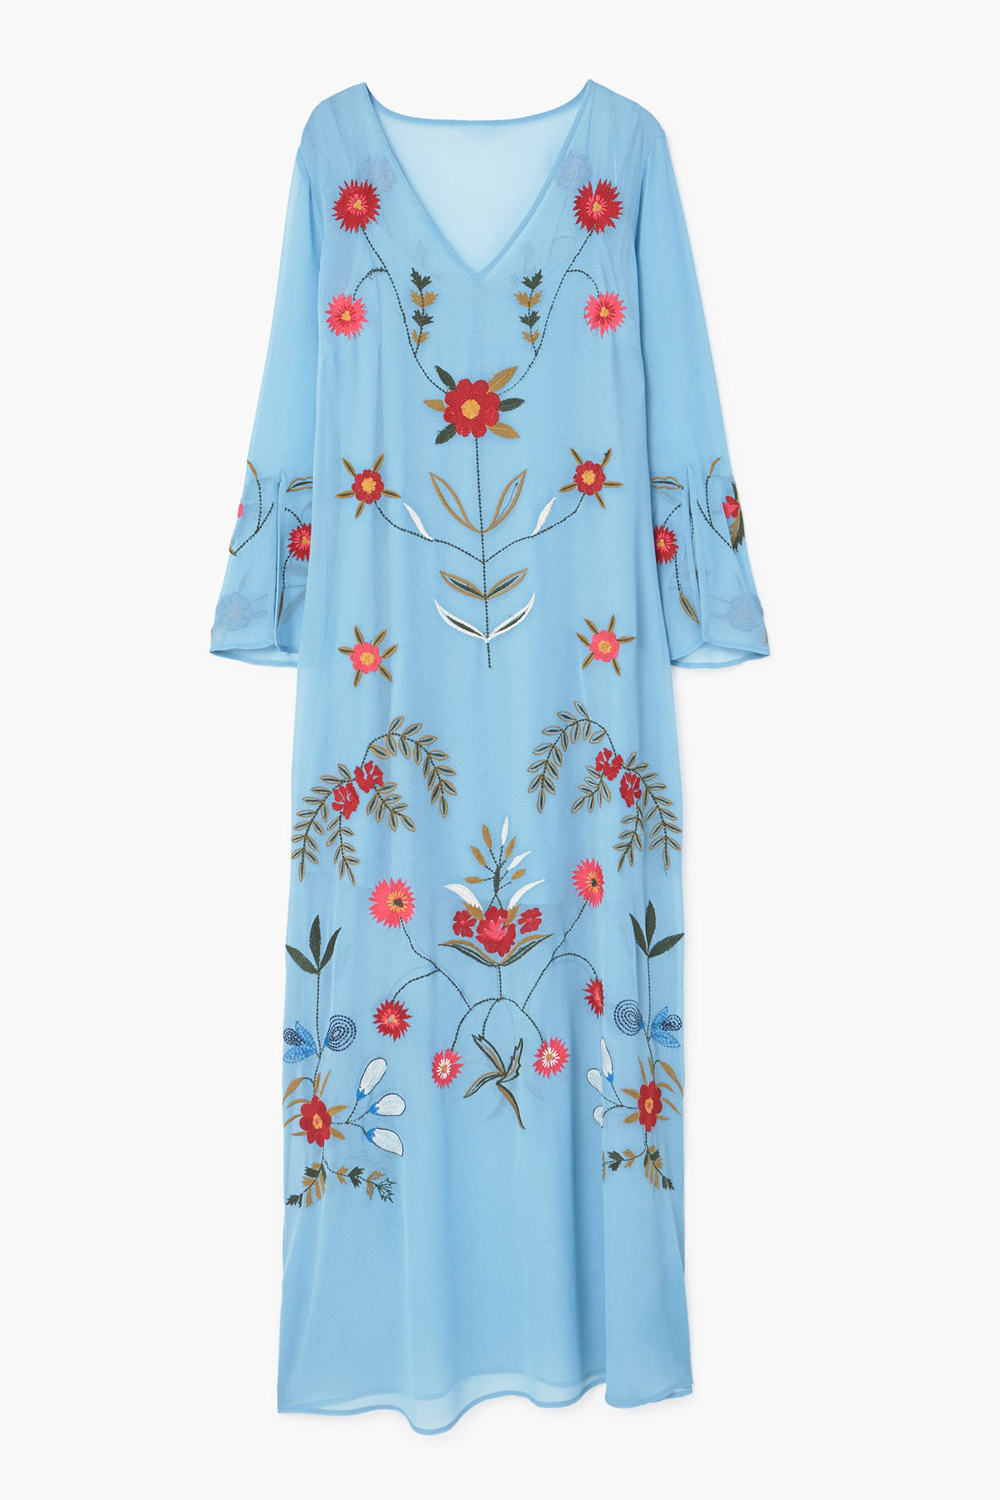 The Best Summer Dresses To Update Your Summer Wardrobe